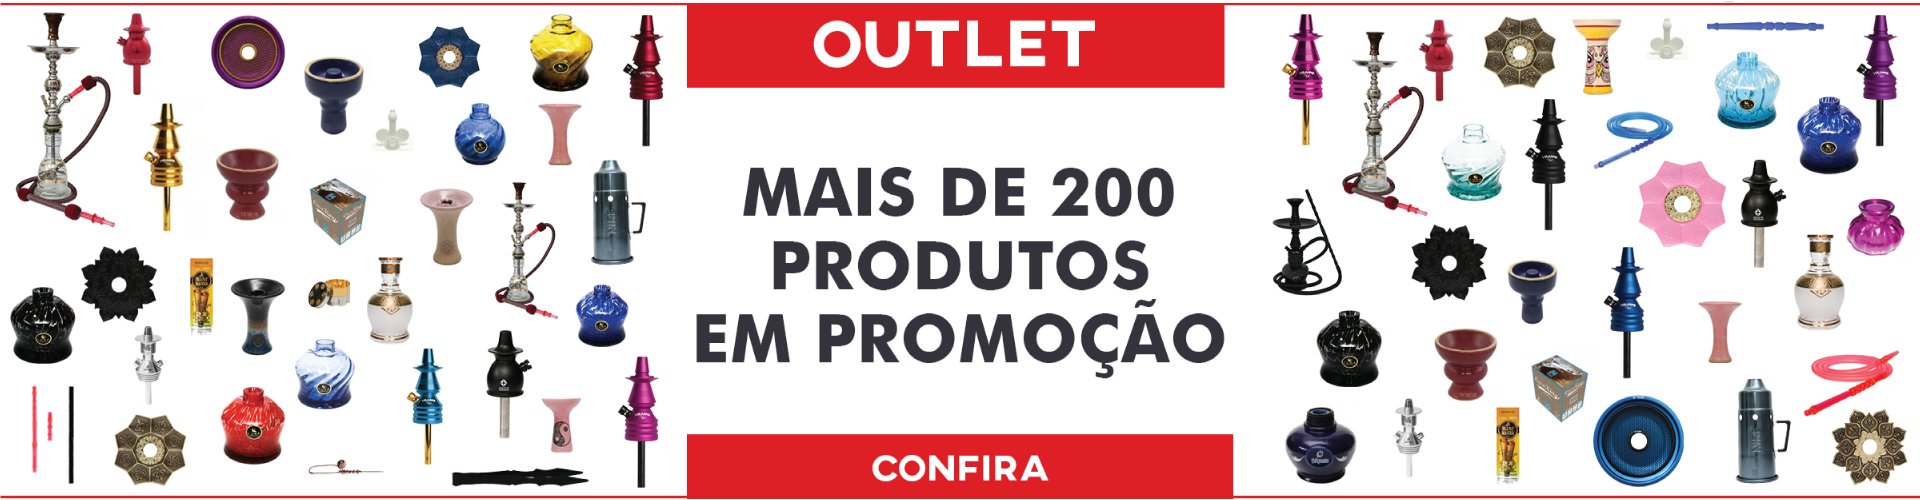 03_DESK_OUTUBRO_MASTER_OUTLET